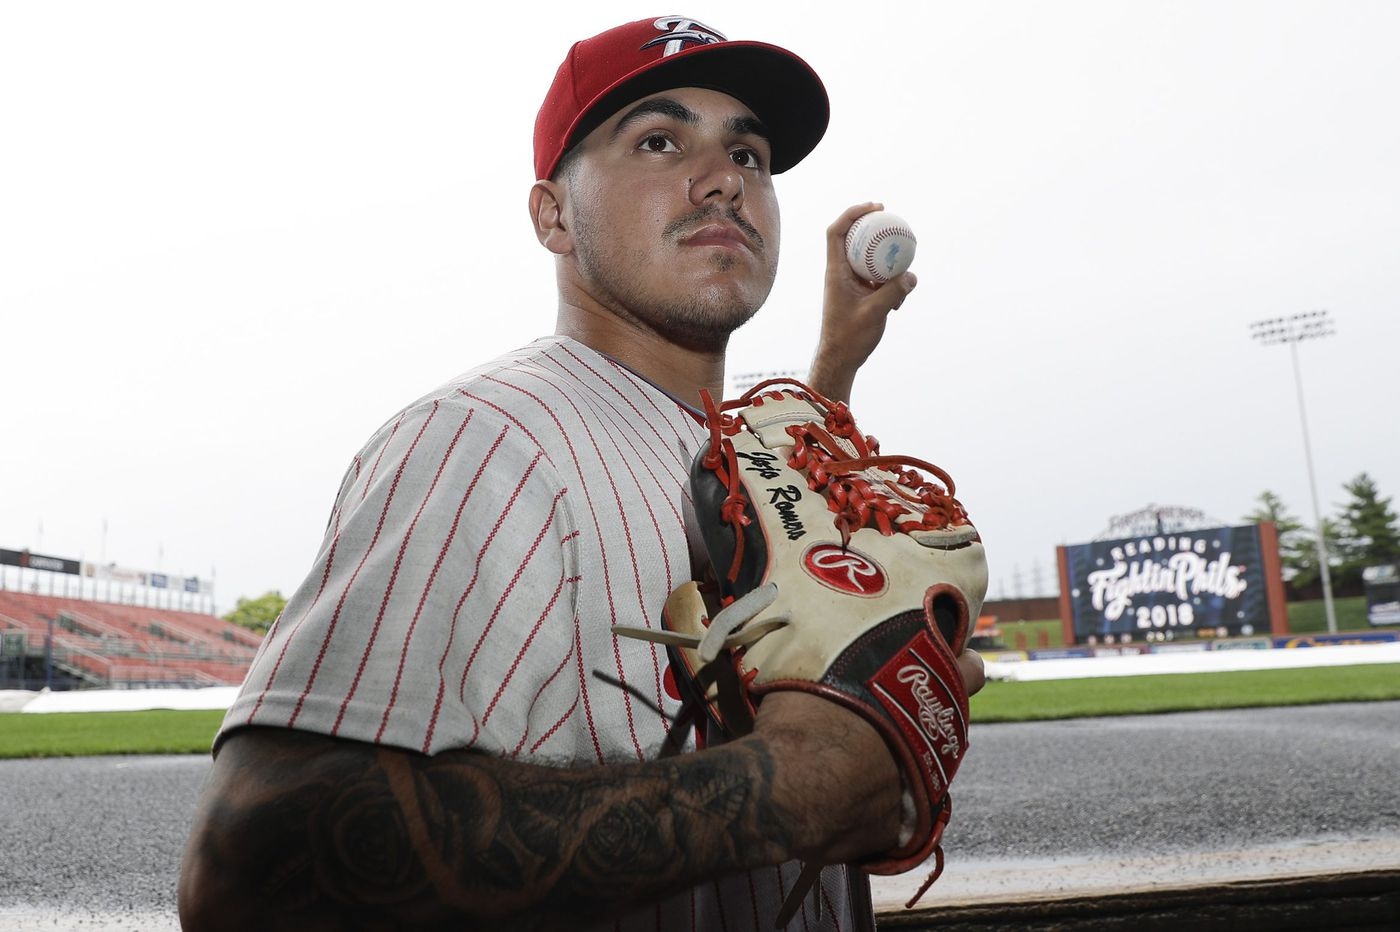 Phillies minor leagues: JoJo Romero is turning things around at double-A Reading